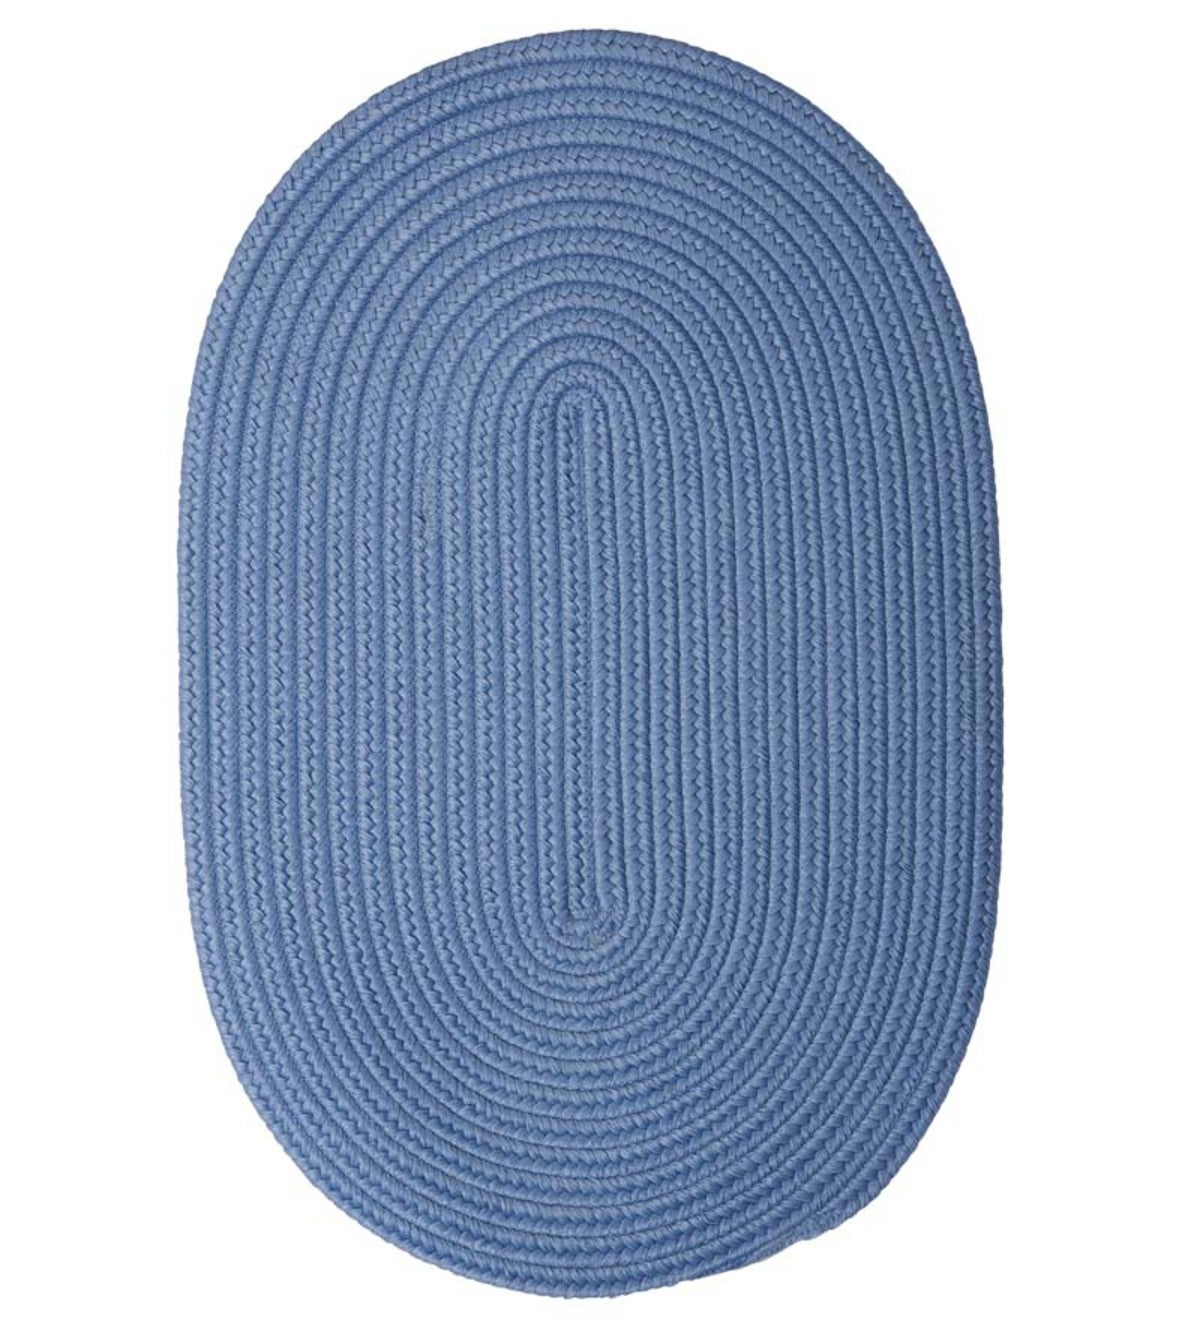 8' Round Braided Rug - French Blue